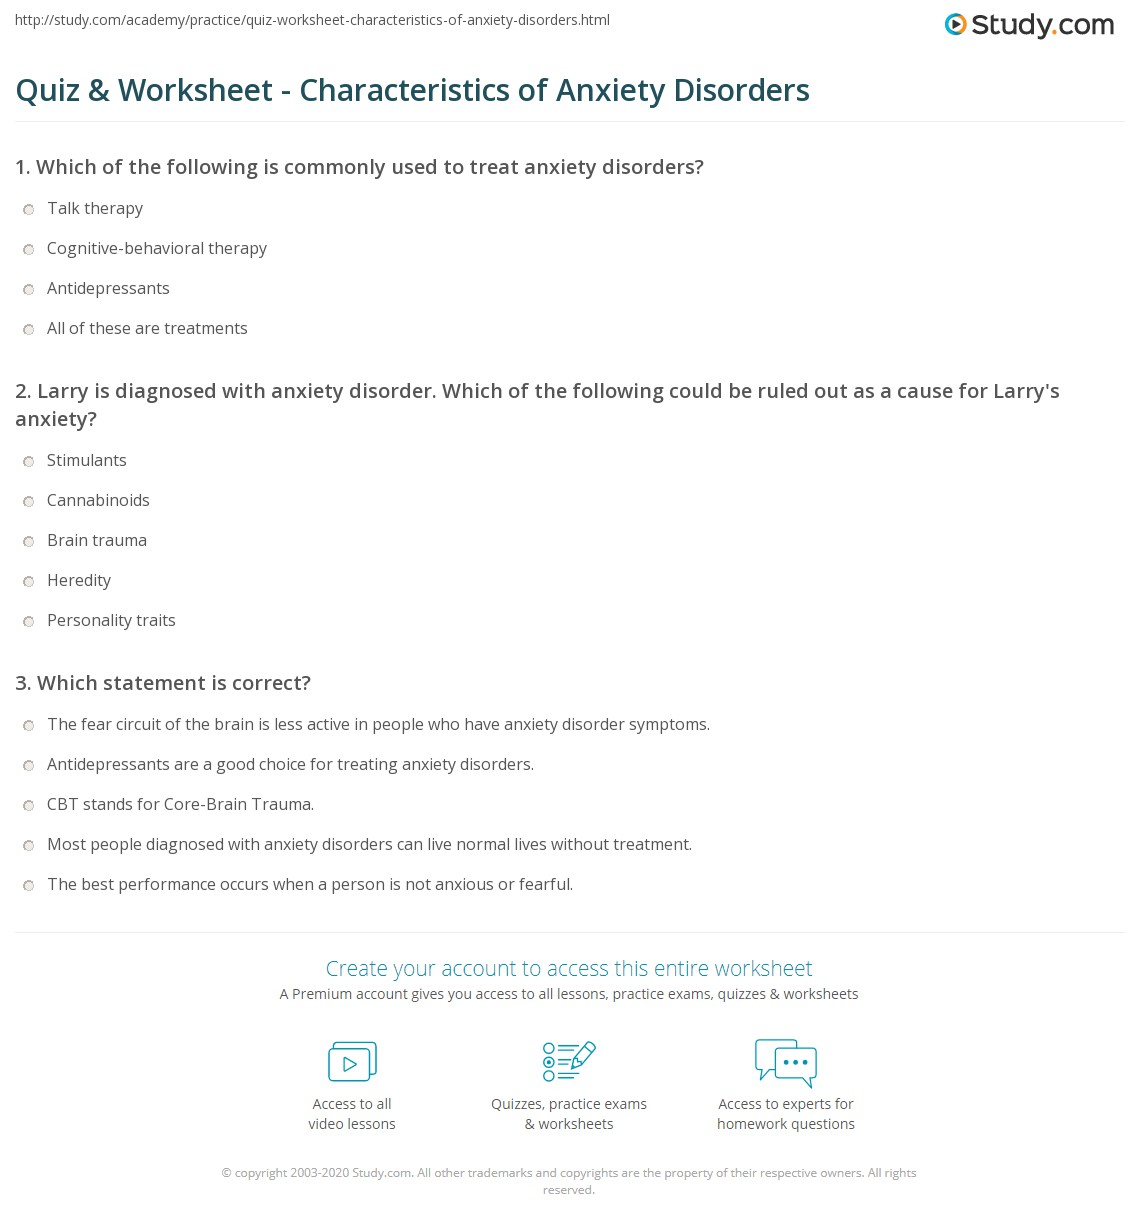 quiz & worksheet - characteristics of anxiety disorders | study